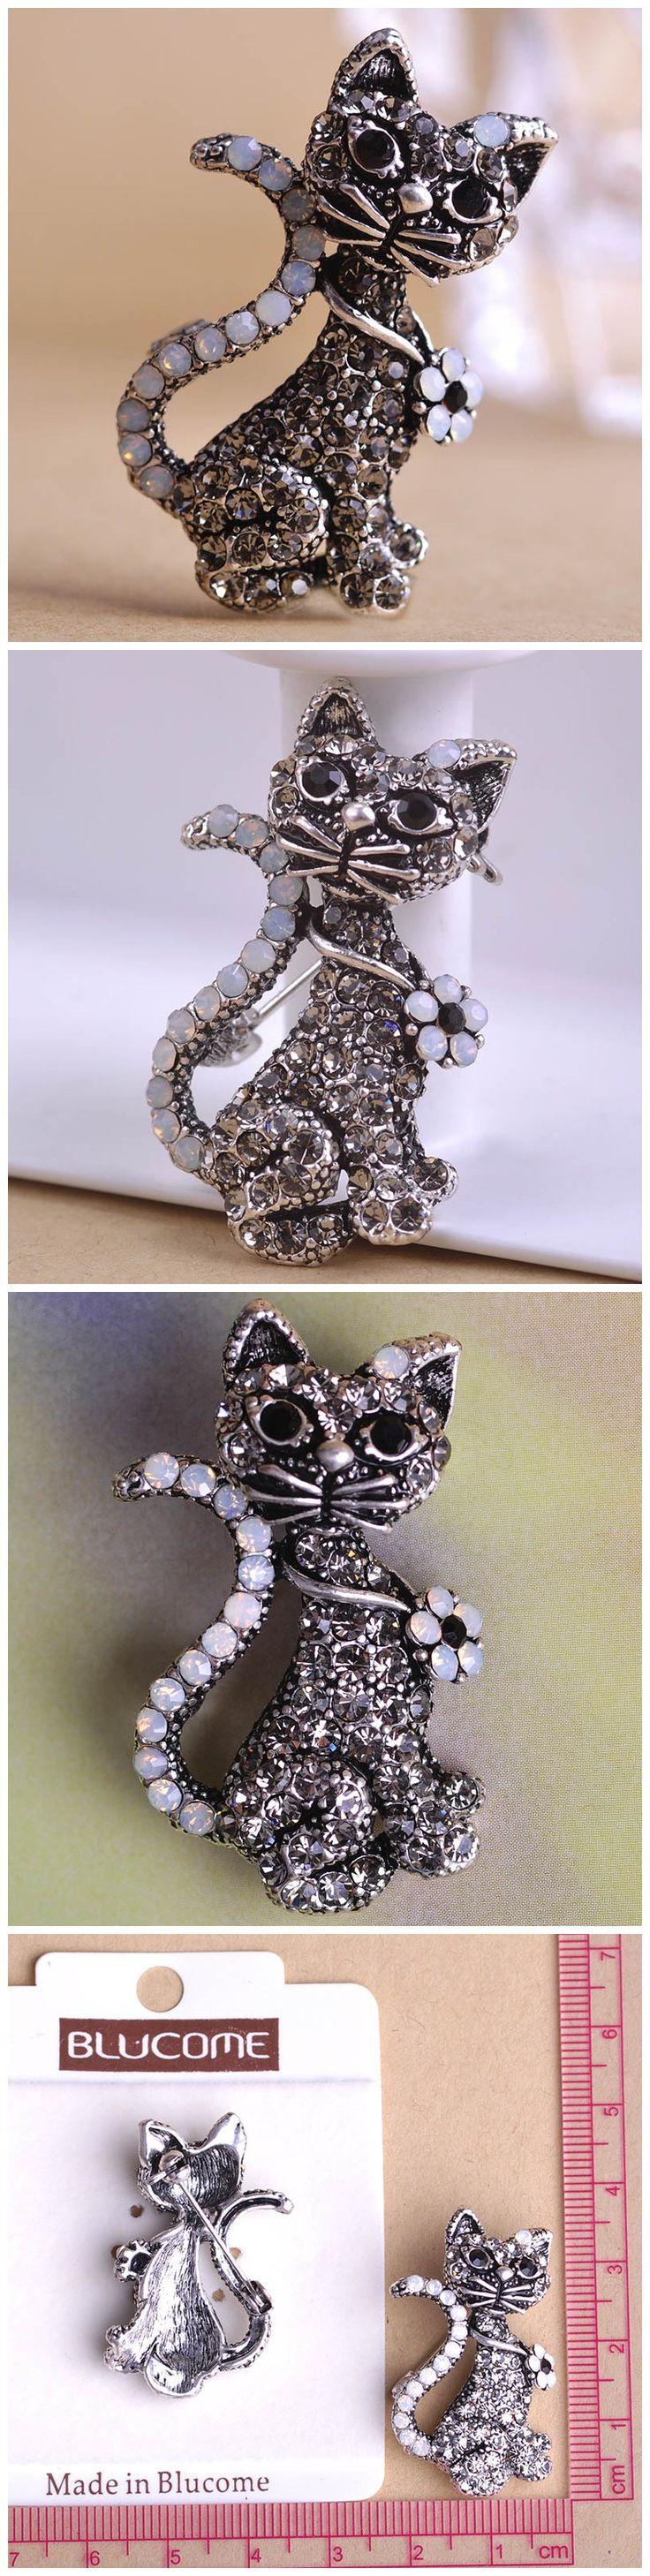 Korea New Arrival Gray Punk Cat Colares Broches Brooches Punk Pins Scarf Pins Brooch Only $9.96  => Save up to 60% and Free Shipping => Order Now! #Ring #Jewelry #woman #fashion  http://www.fancyjewelries.net/product/korea-new-arrival-gray-punk-cat-colares-broches-brooches-punk-pins-scarf-pins-brooch-bouquet-wedding-brooch-wholesale-unhas/